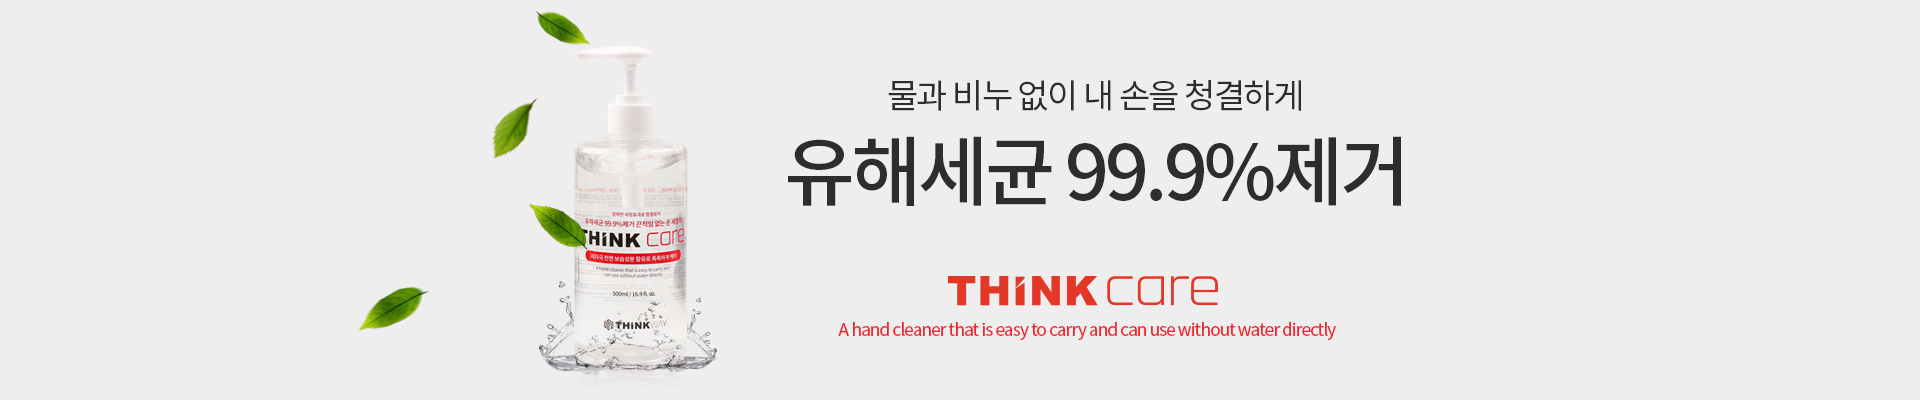 thinkcarae-top-1920x400-200423.png